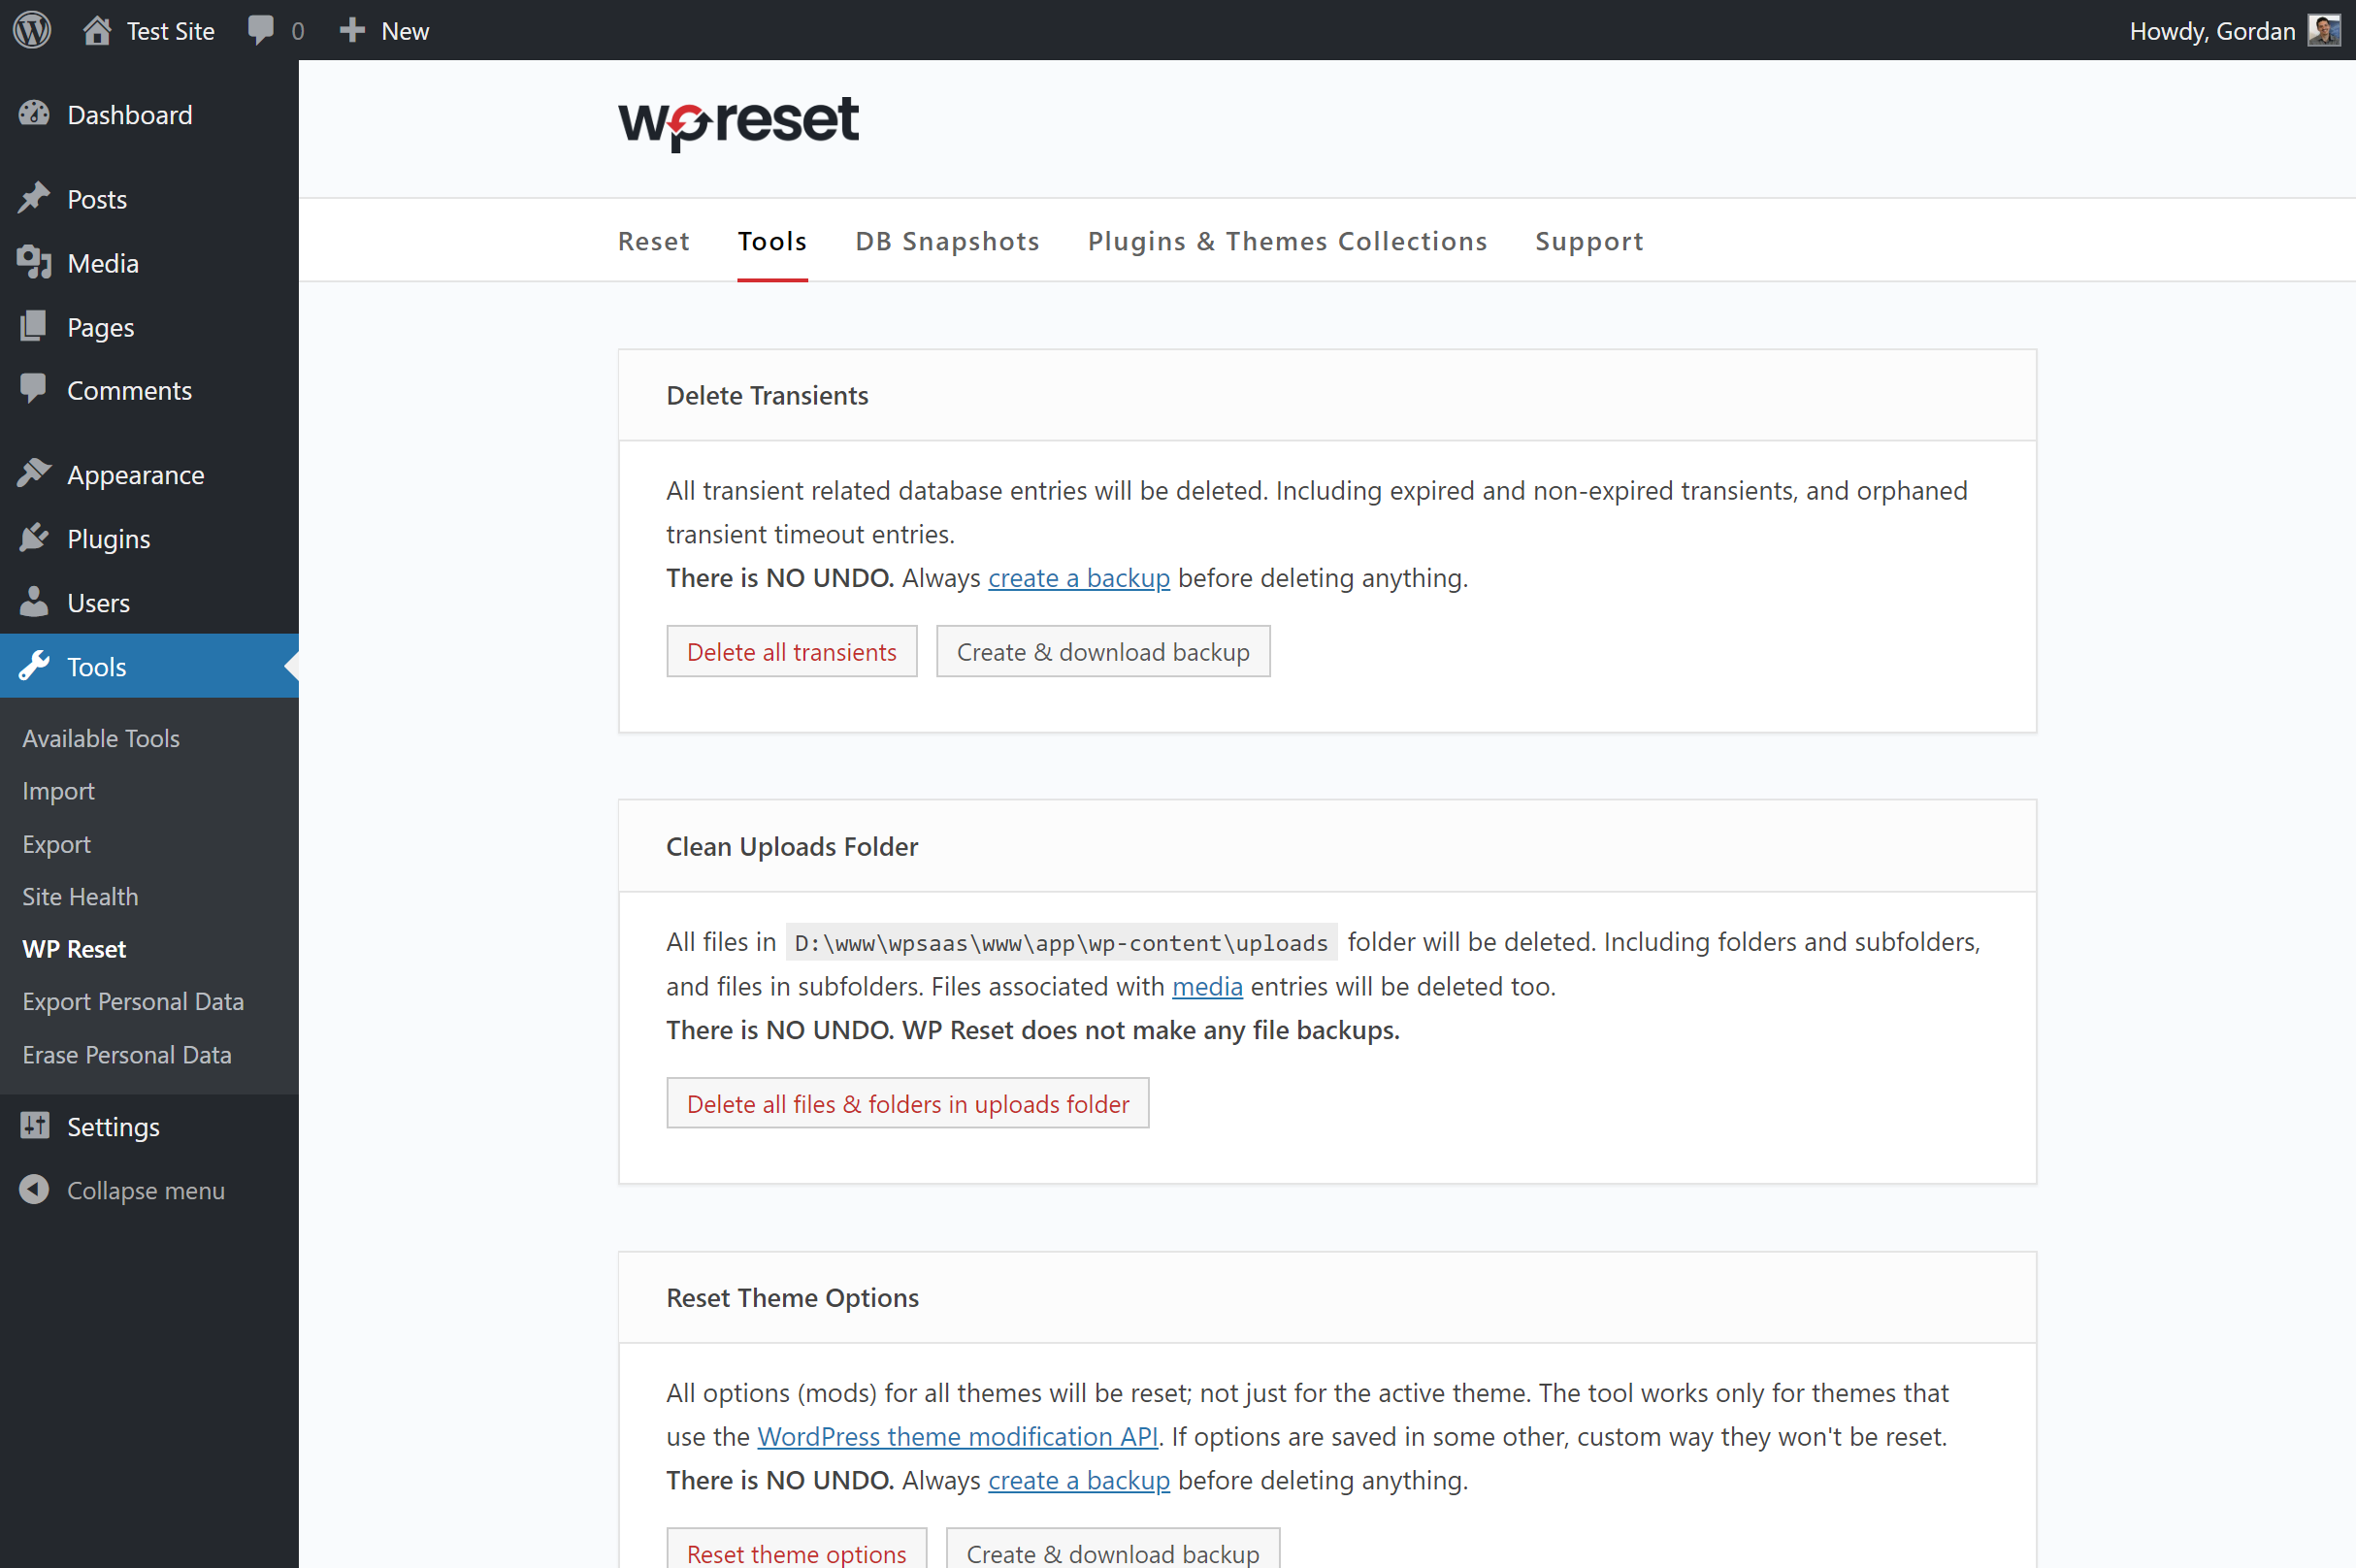 Additional tools for resetting and deleting various WordPress objects